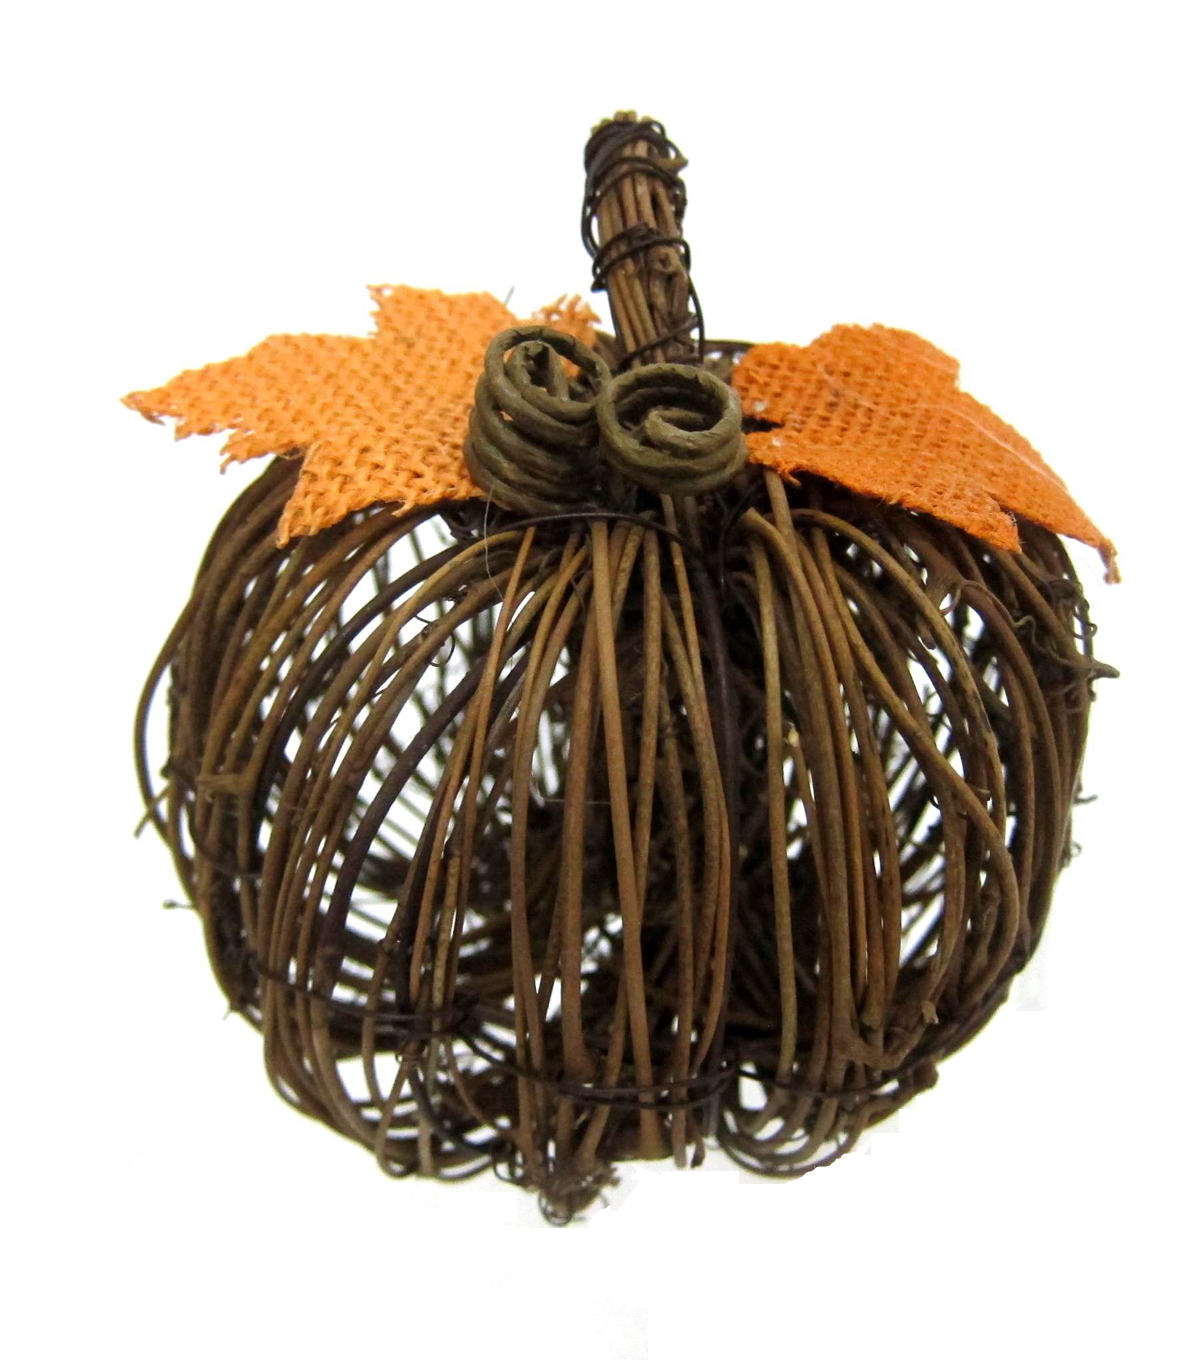 Pumpkin Boutique Extra Small Rattan Pumpkin with Orange Leaves